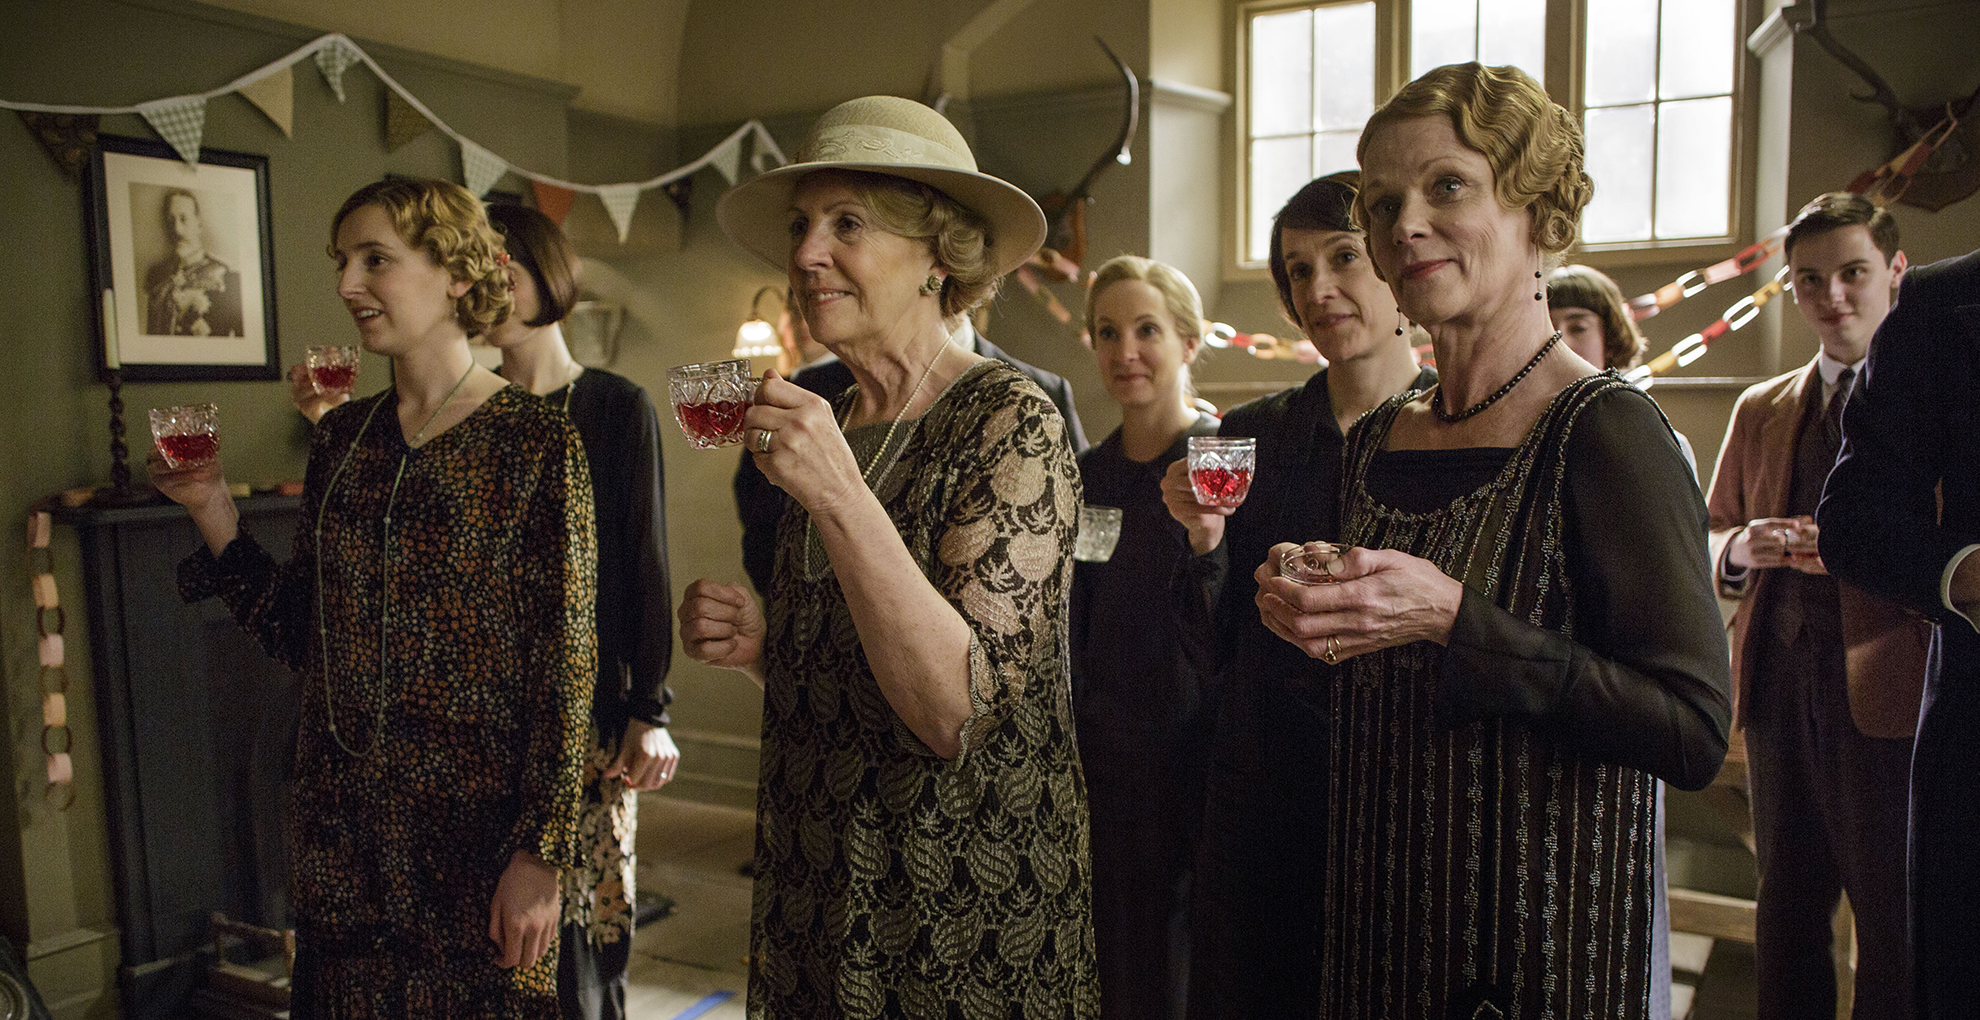 A scene from Downton Abbey, Season 6, Episode 4 on MASTERPIECE on PBS. L to R: Laura Carmichael as Lady Edith, Penelope Wilton as Isobel Crawley, Joanne Froggatt as Anna Bates, Raquel Cassidy as Baxter, and Samantha Bond as Aunt Rosamund